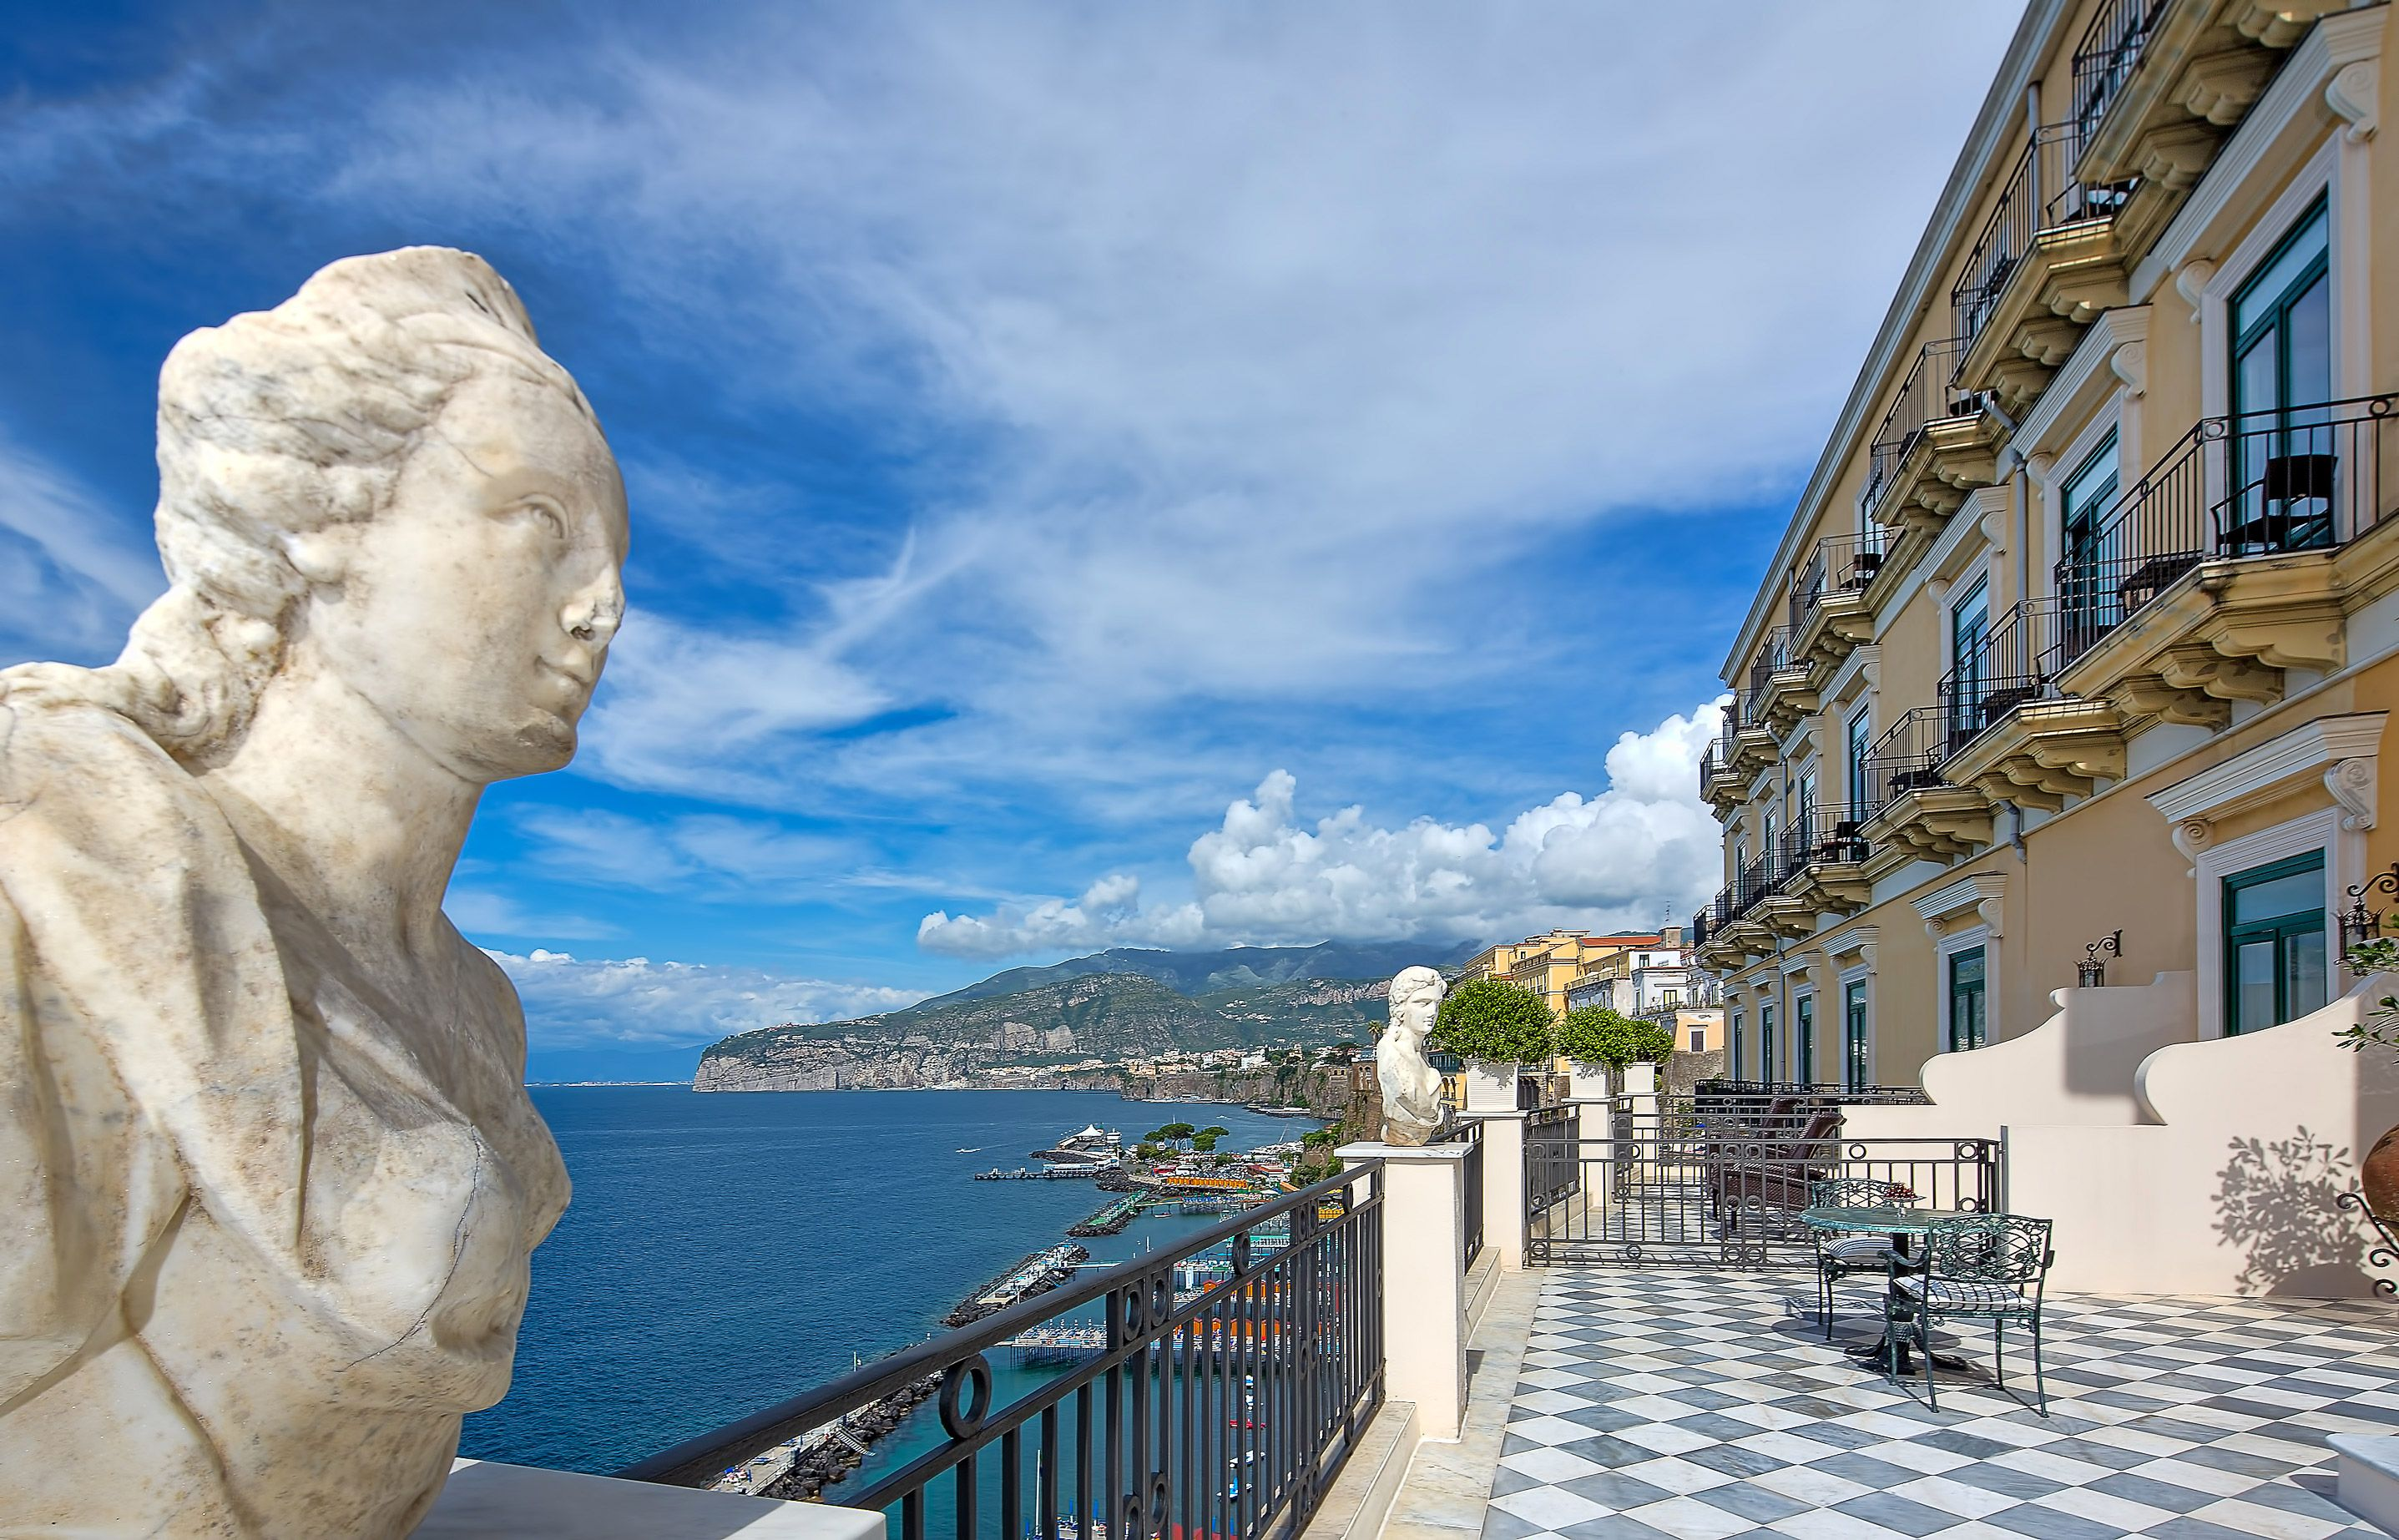 Sorrento Hotels 5 star Italy, best boutique luxury Hotels near ...